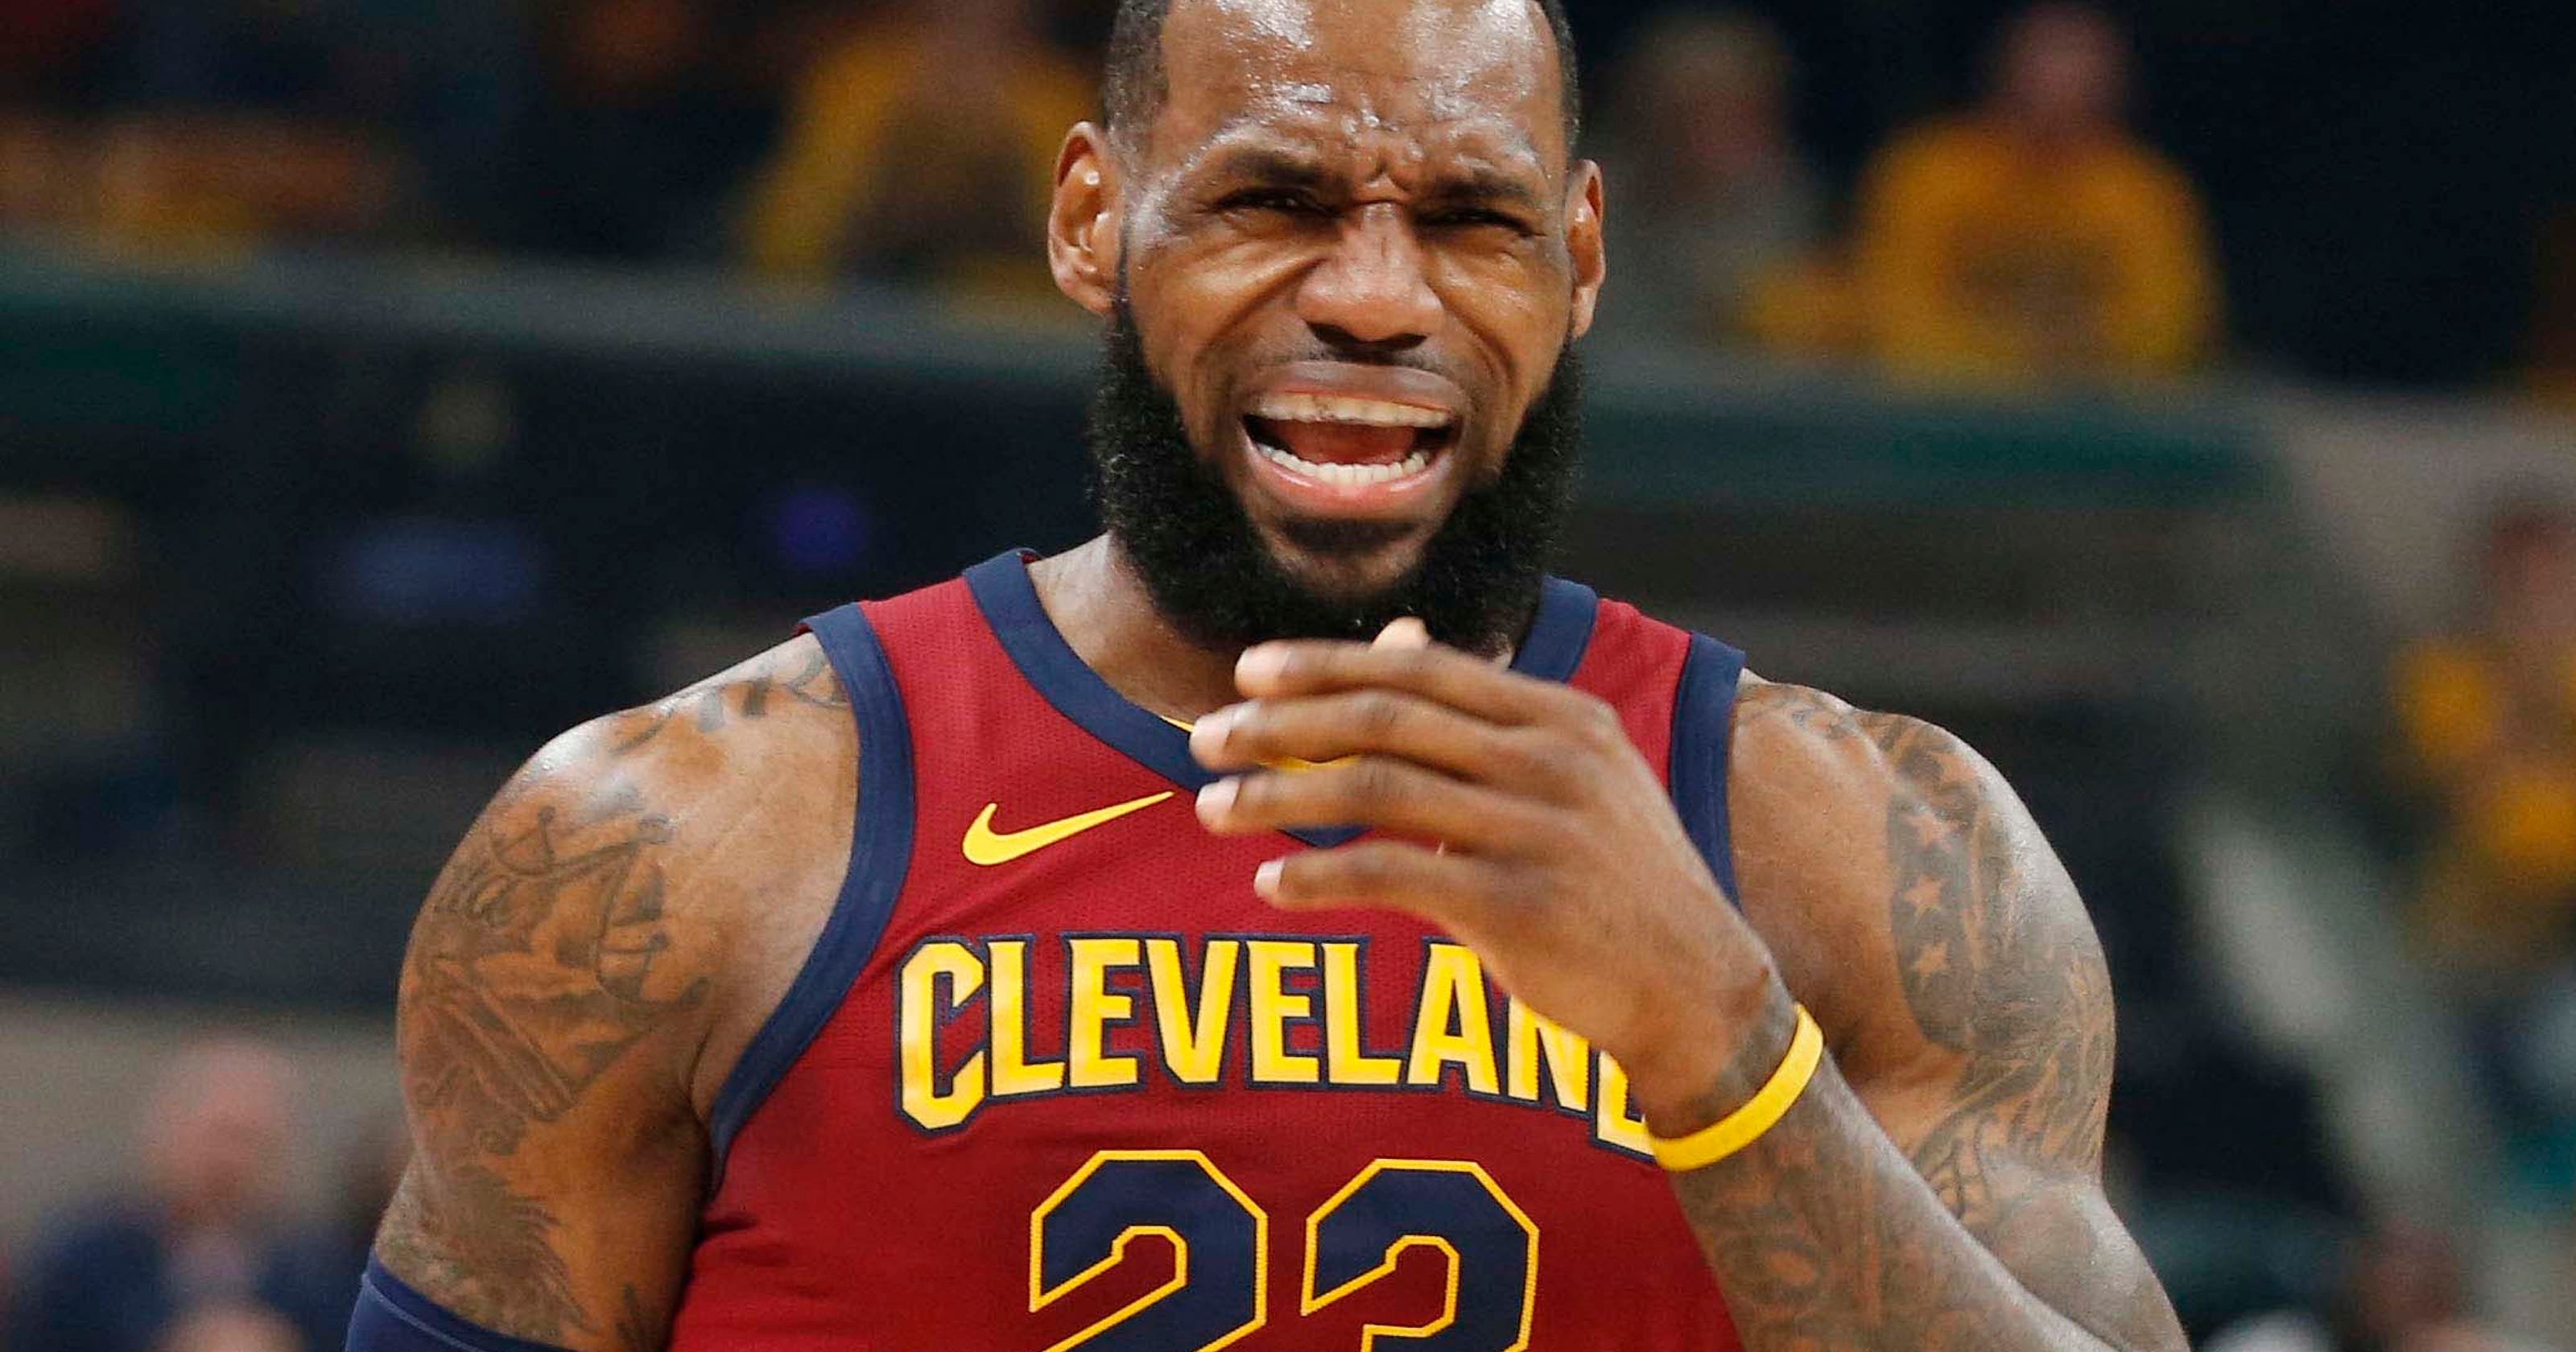 438c6d24c3d NBA playoffs  LeBron James and the Cavs need to stop it with the suits